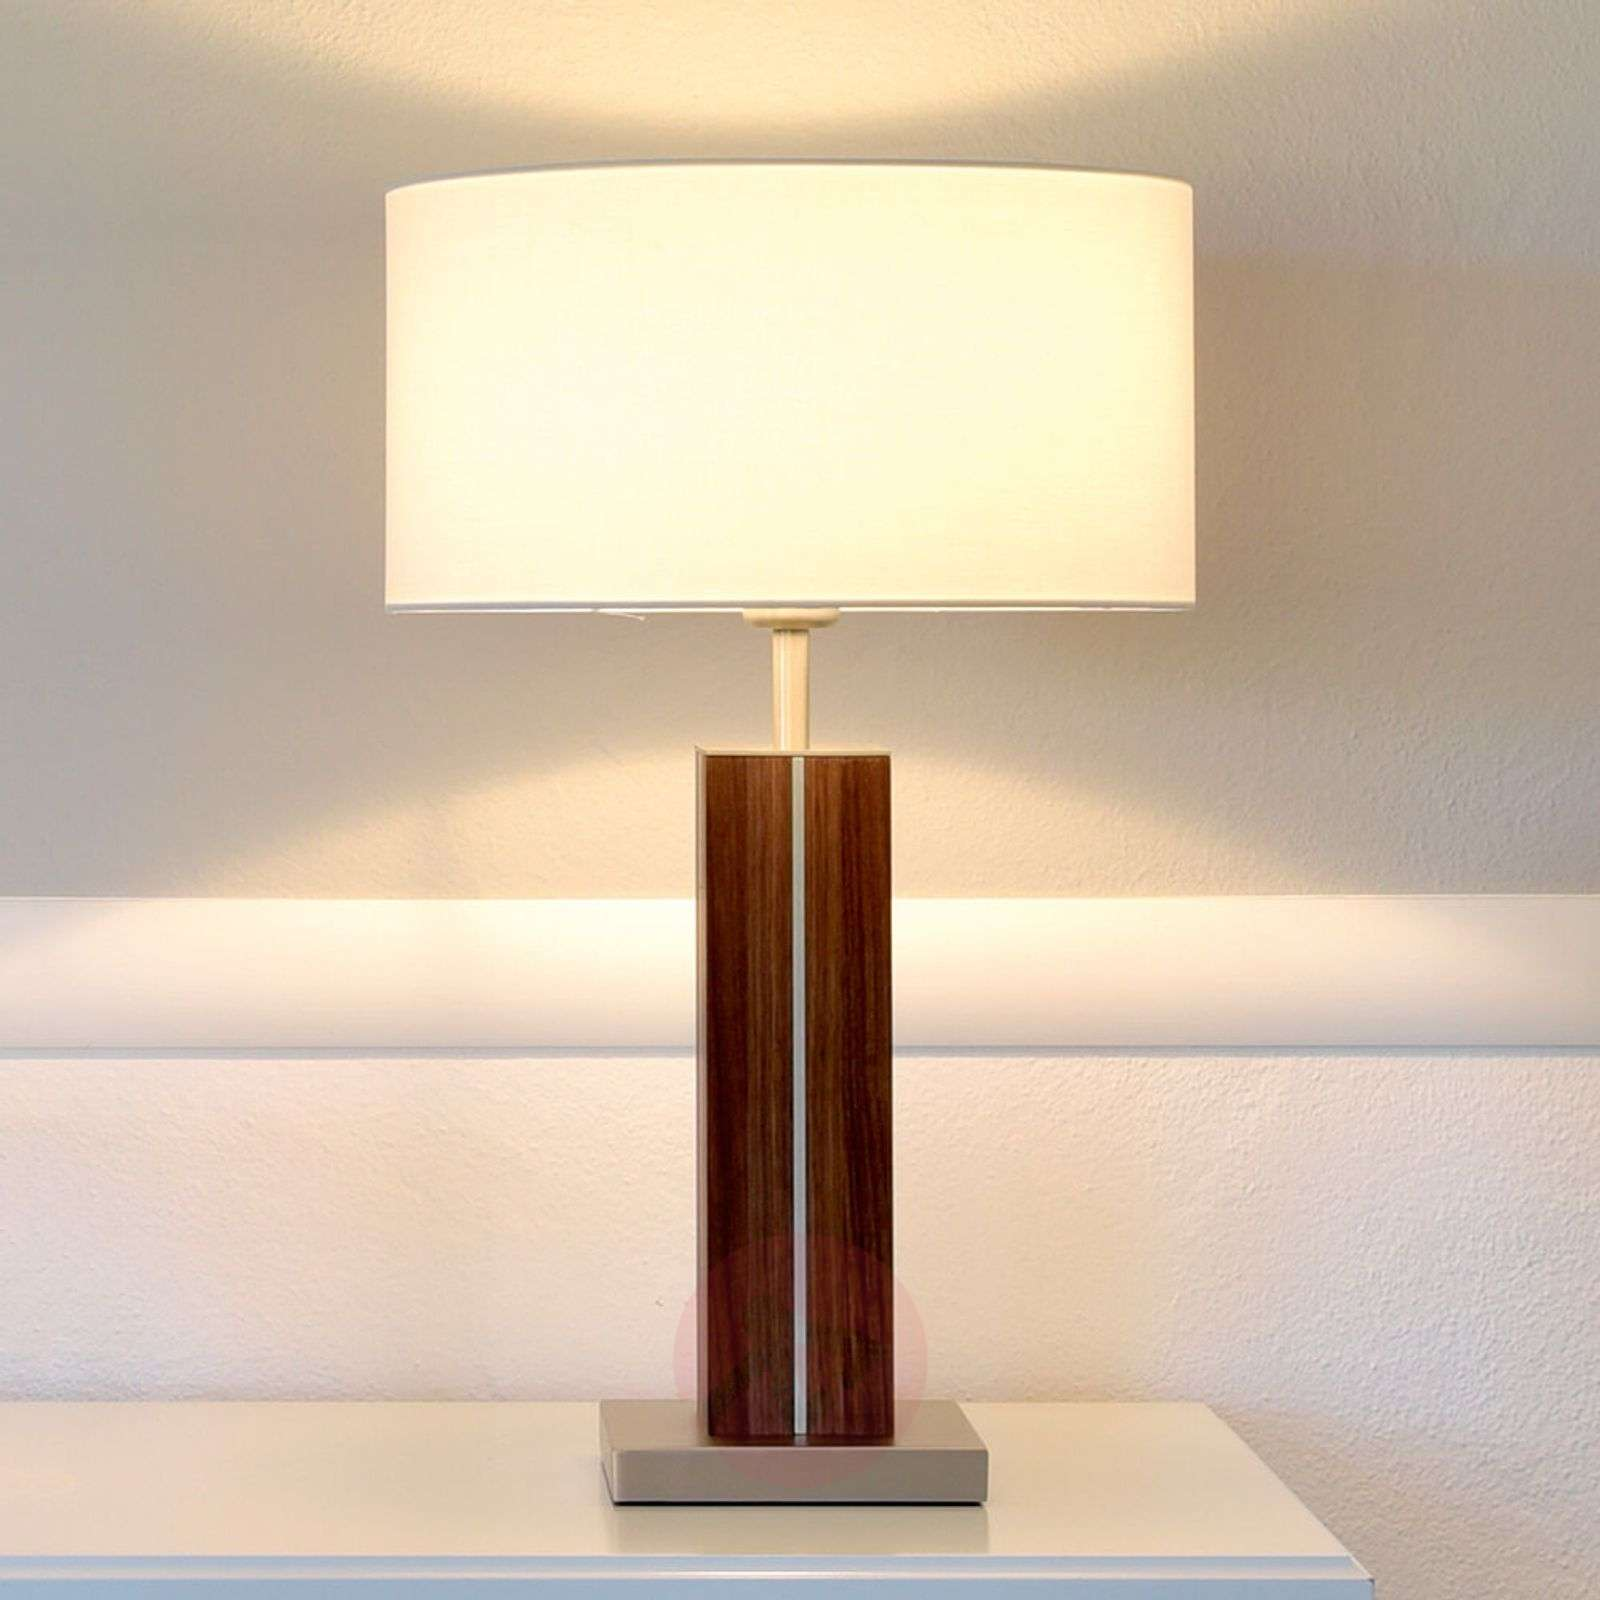 High Quality Dana Buffet Lamp With Solid Wood Base 4543011 01 ...